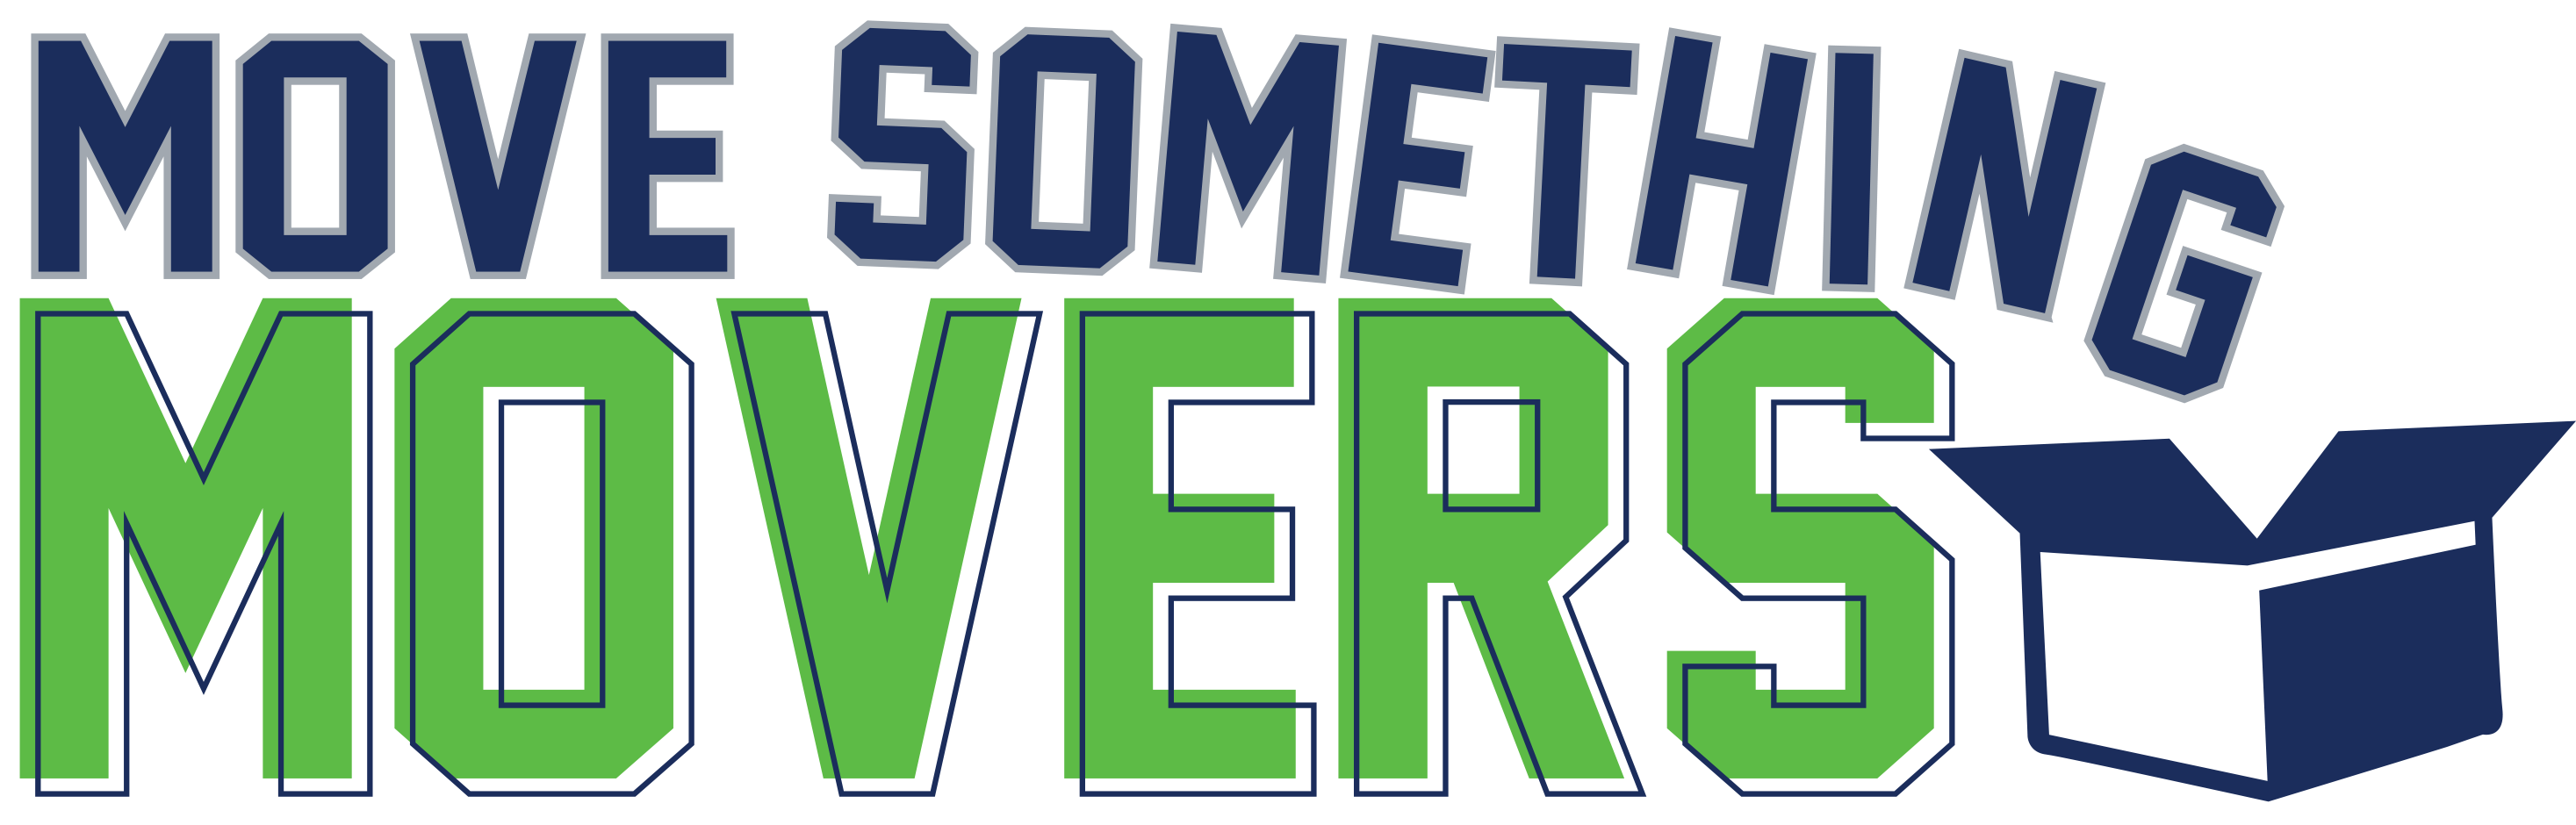 Move Something Movers Logo